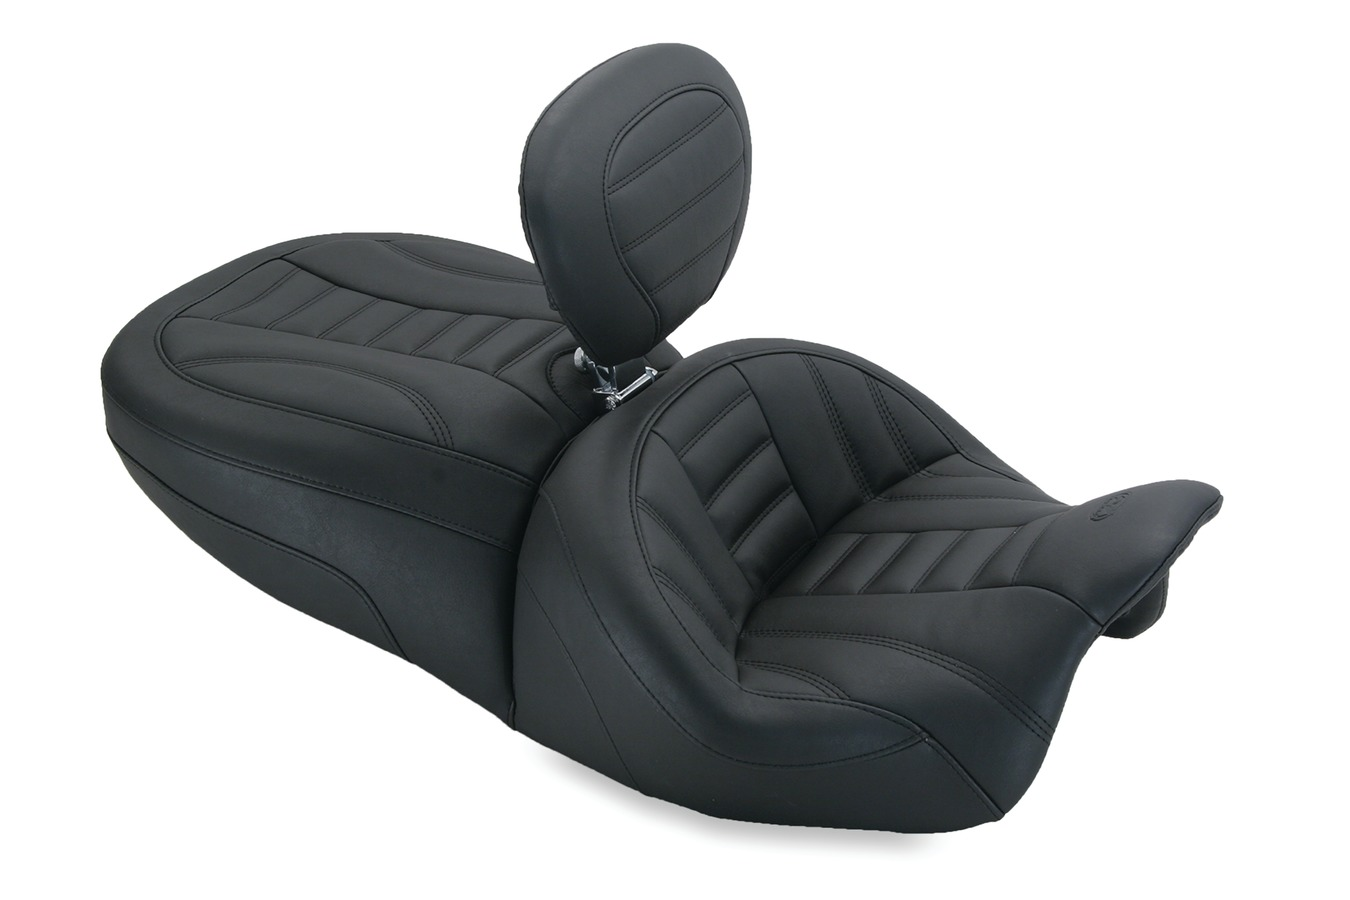 Standard Touring Deluxe One-Piece Seat with Driver Backrest, Deluxe, Black